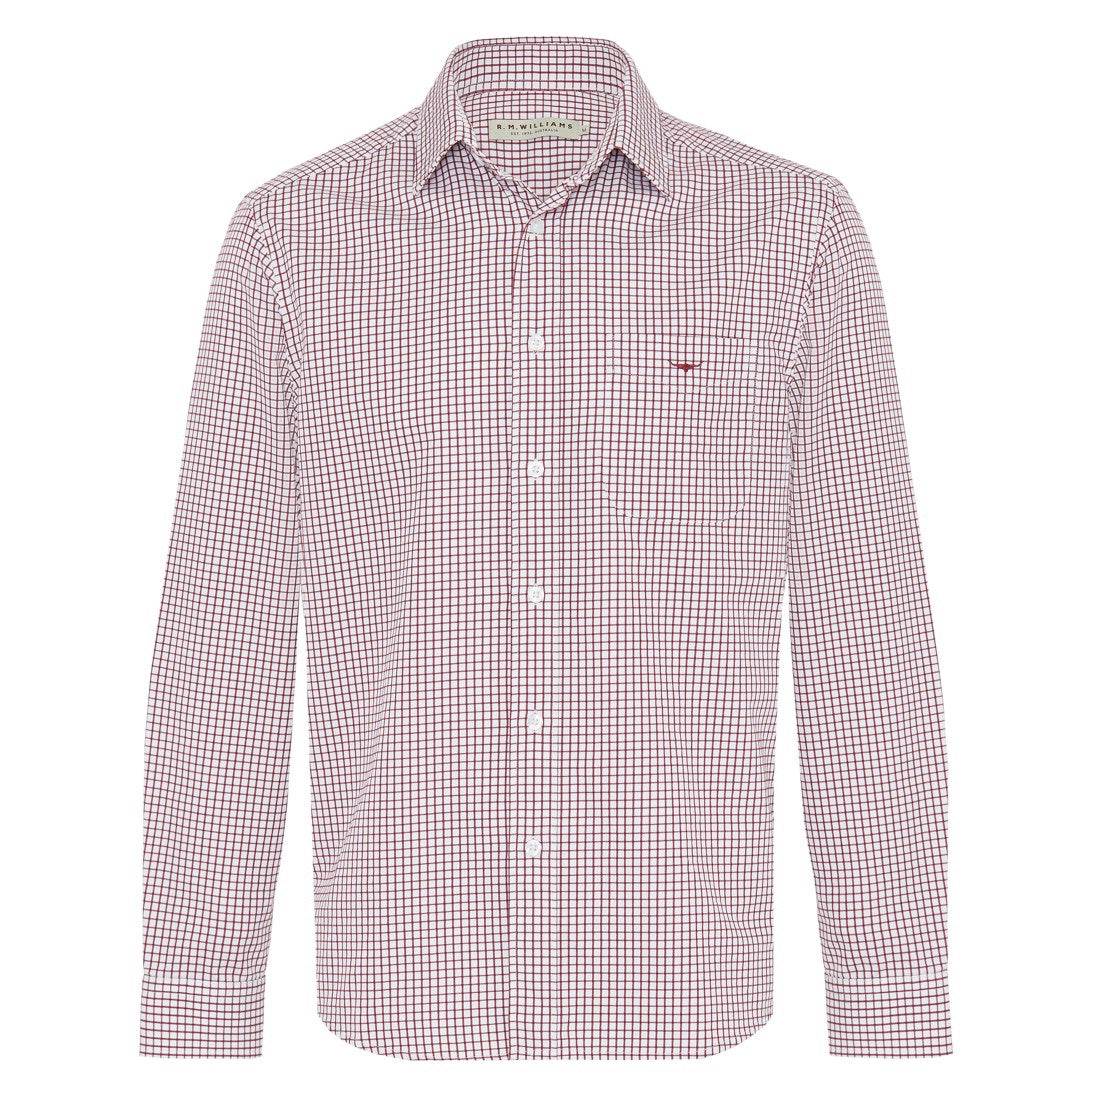 R.M.Williams Collins Shirt Burgundy/White Small Check Regular Fit